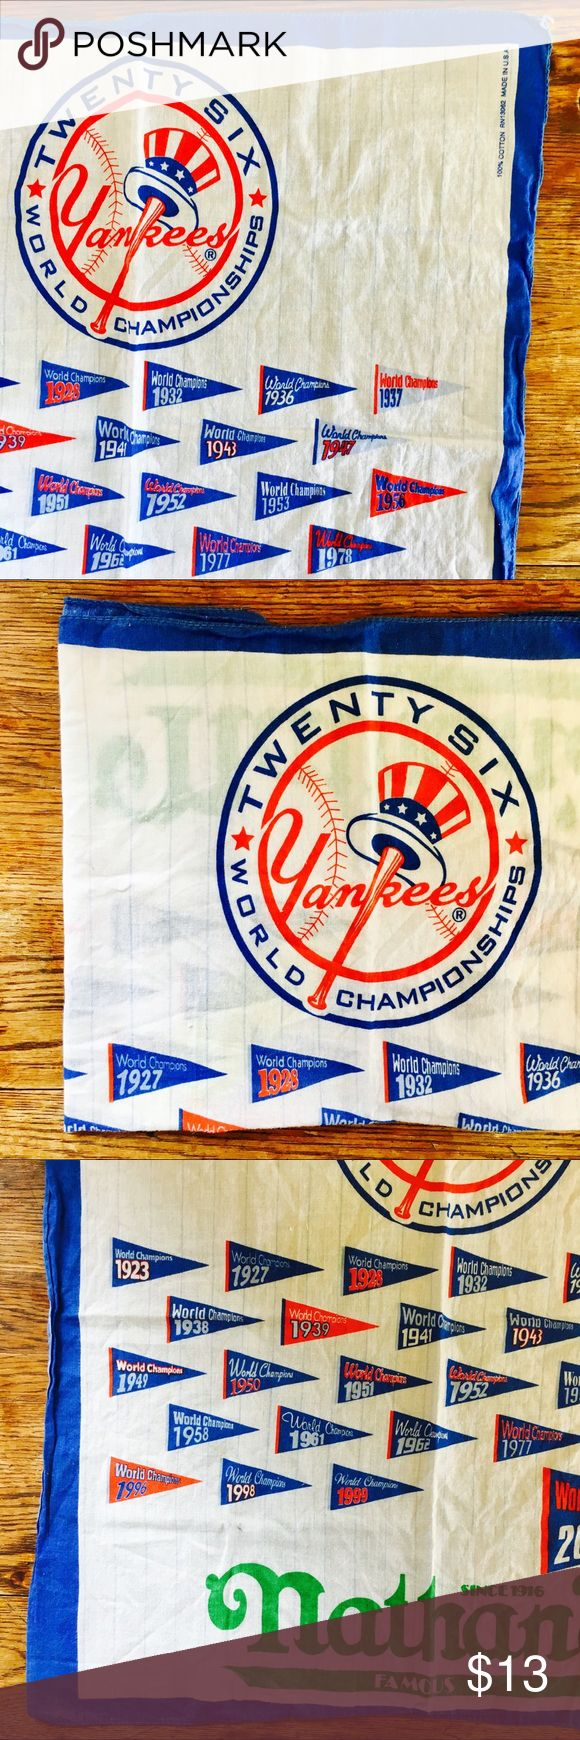 Yankees 2000 World Series Champions Bandana too fun. gentle wear, fair pre-loved condition. a few spots, stains, loose strings. missing seam on one side. a million wears left, perfect for everything. 100% cotton. colors are bright. Accessories Scarves